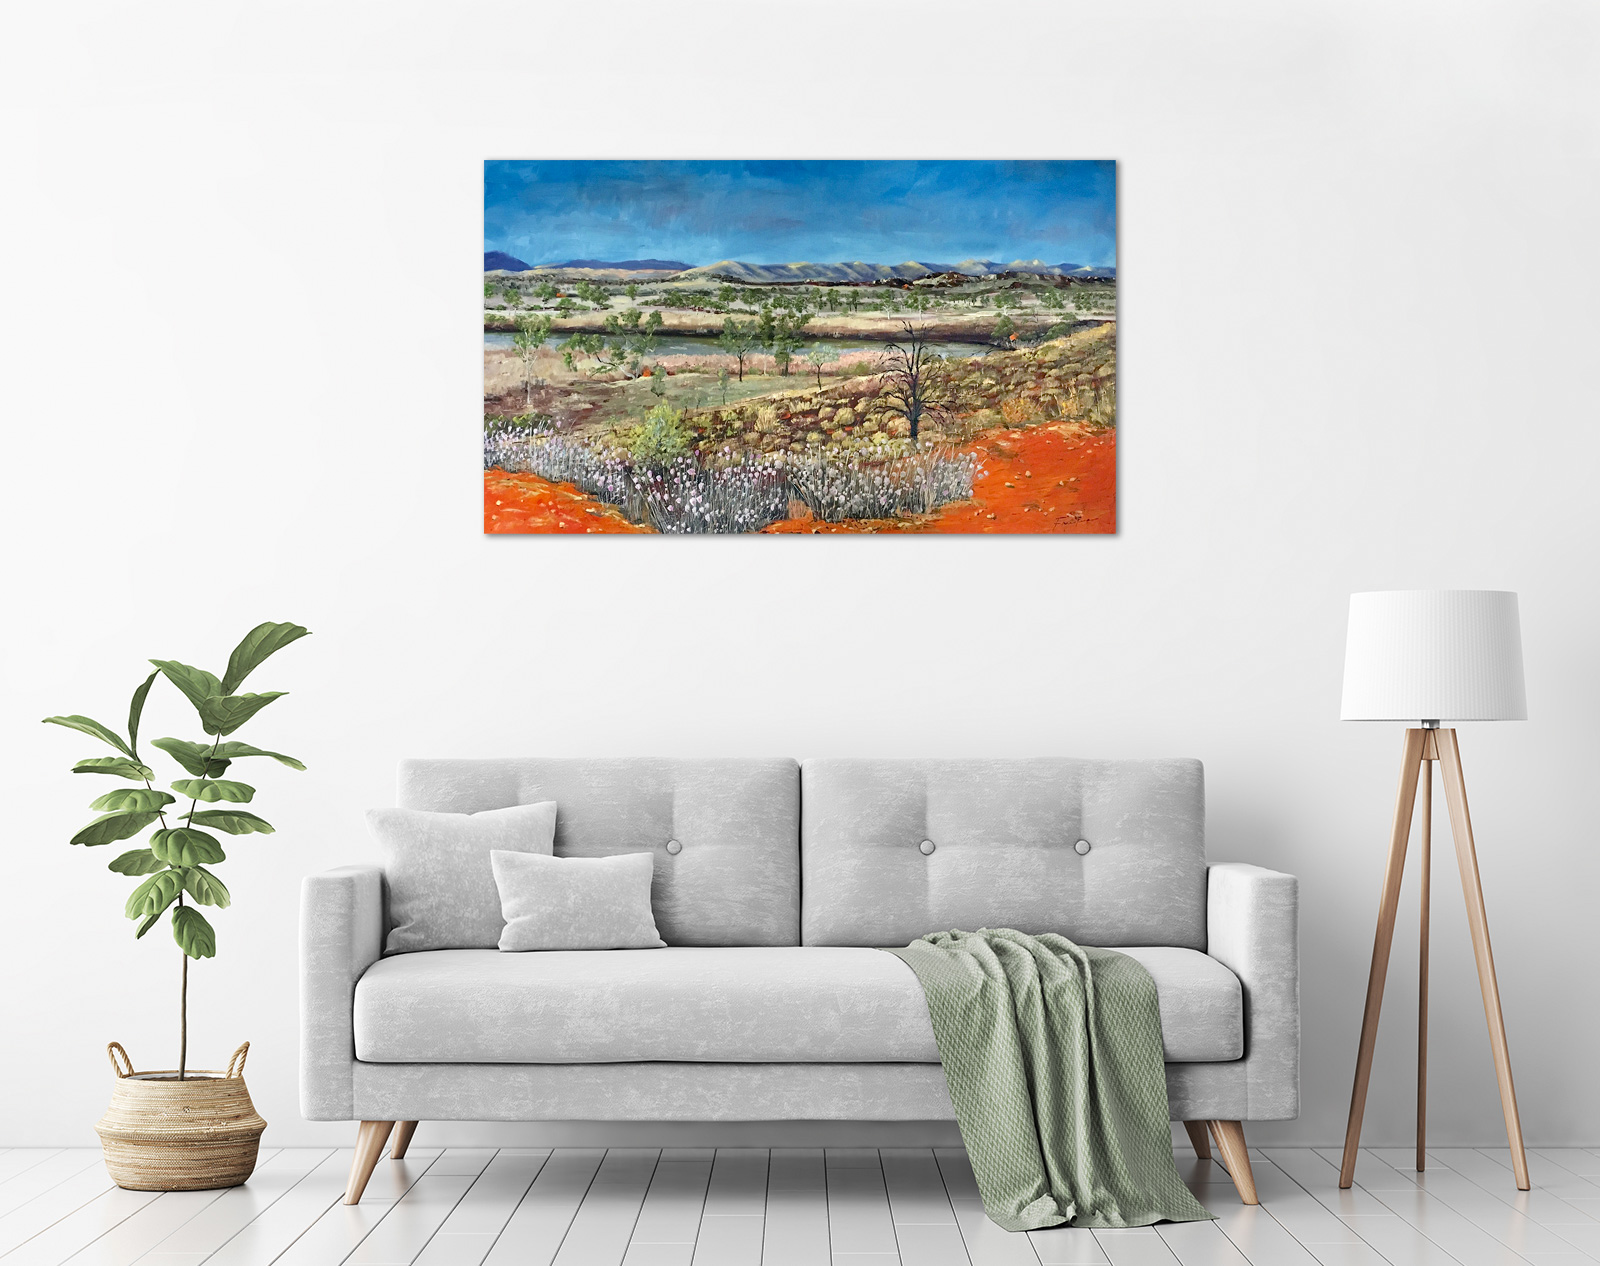 Steve Freestone - 'West MacDonnell Ranges' in a room